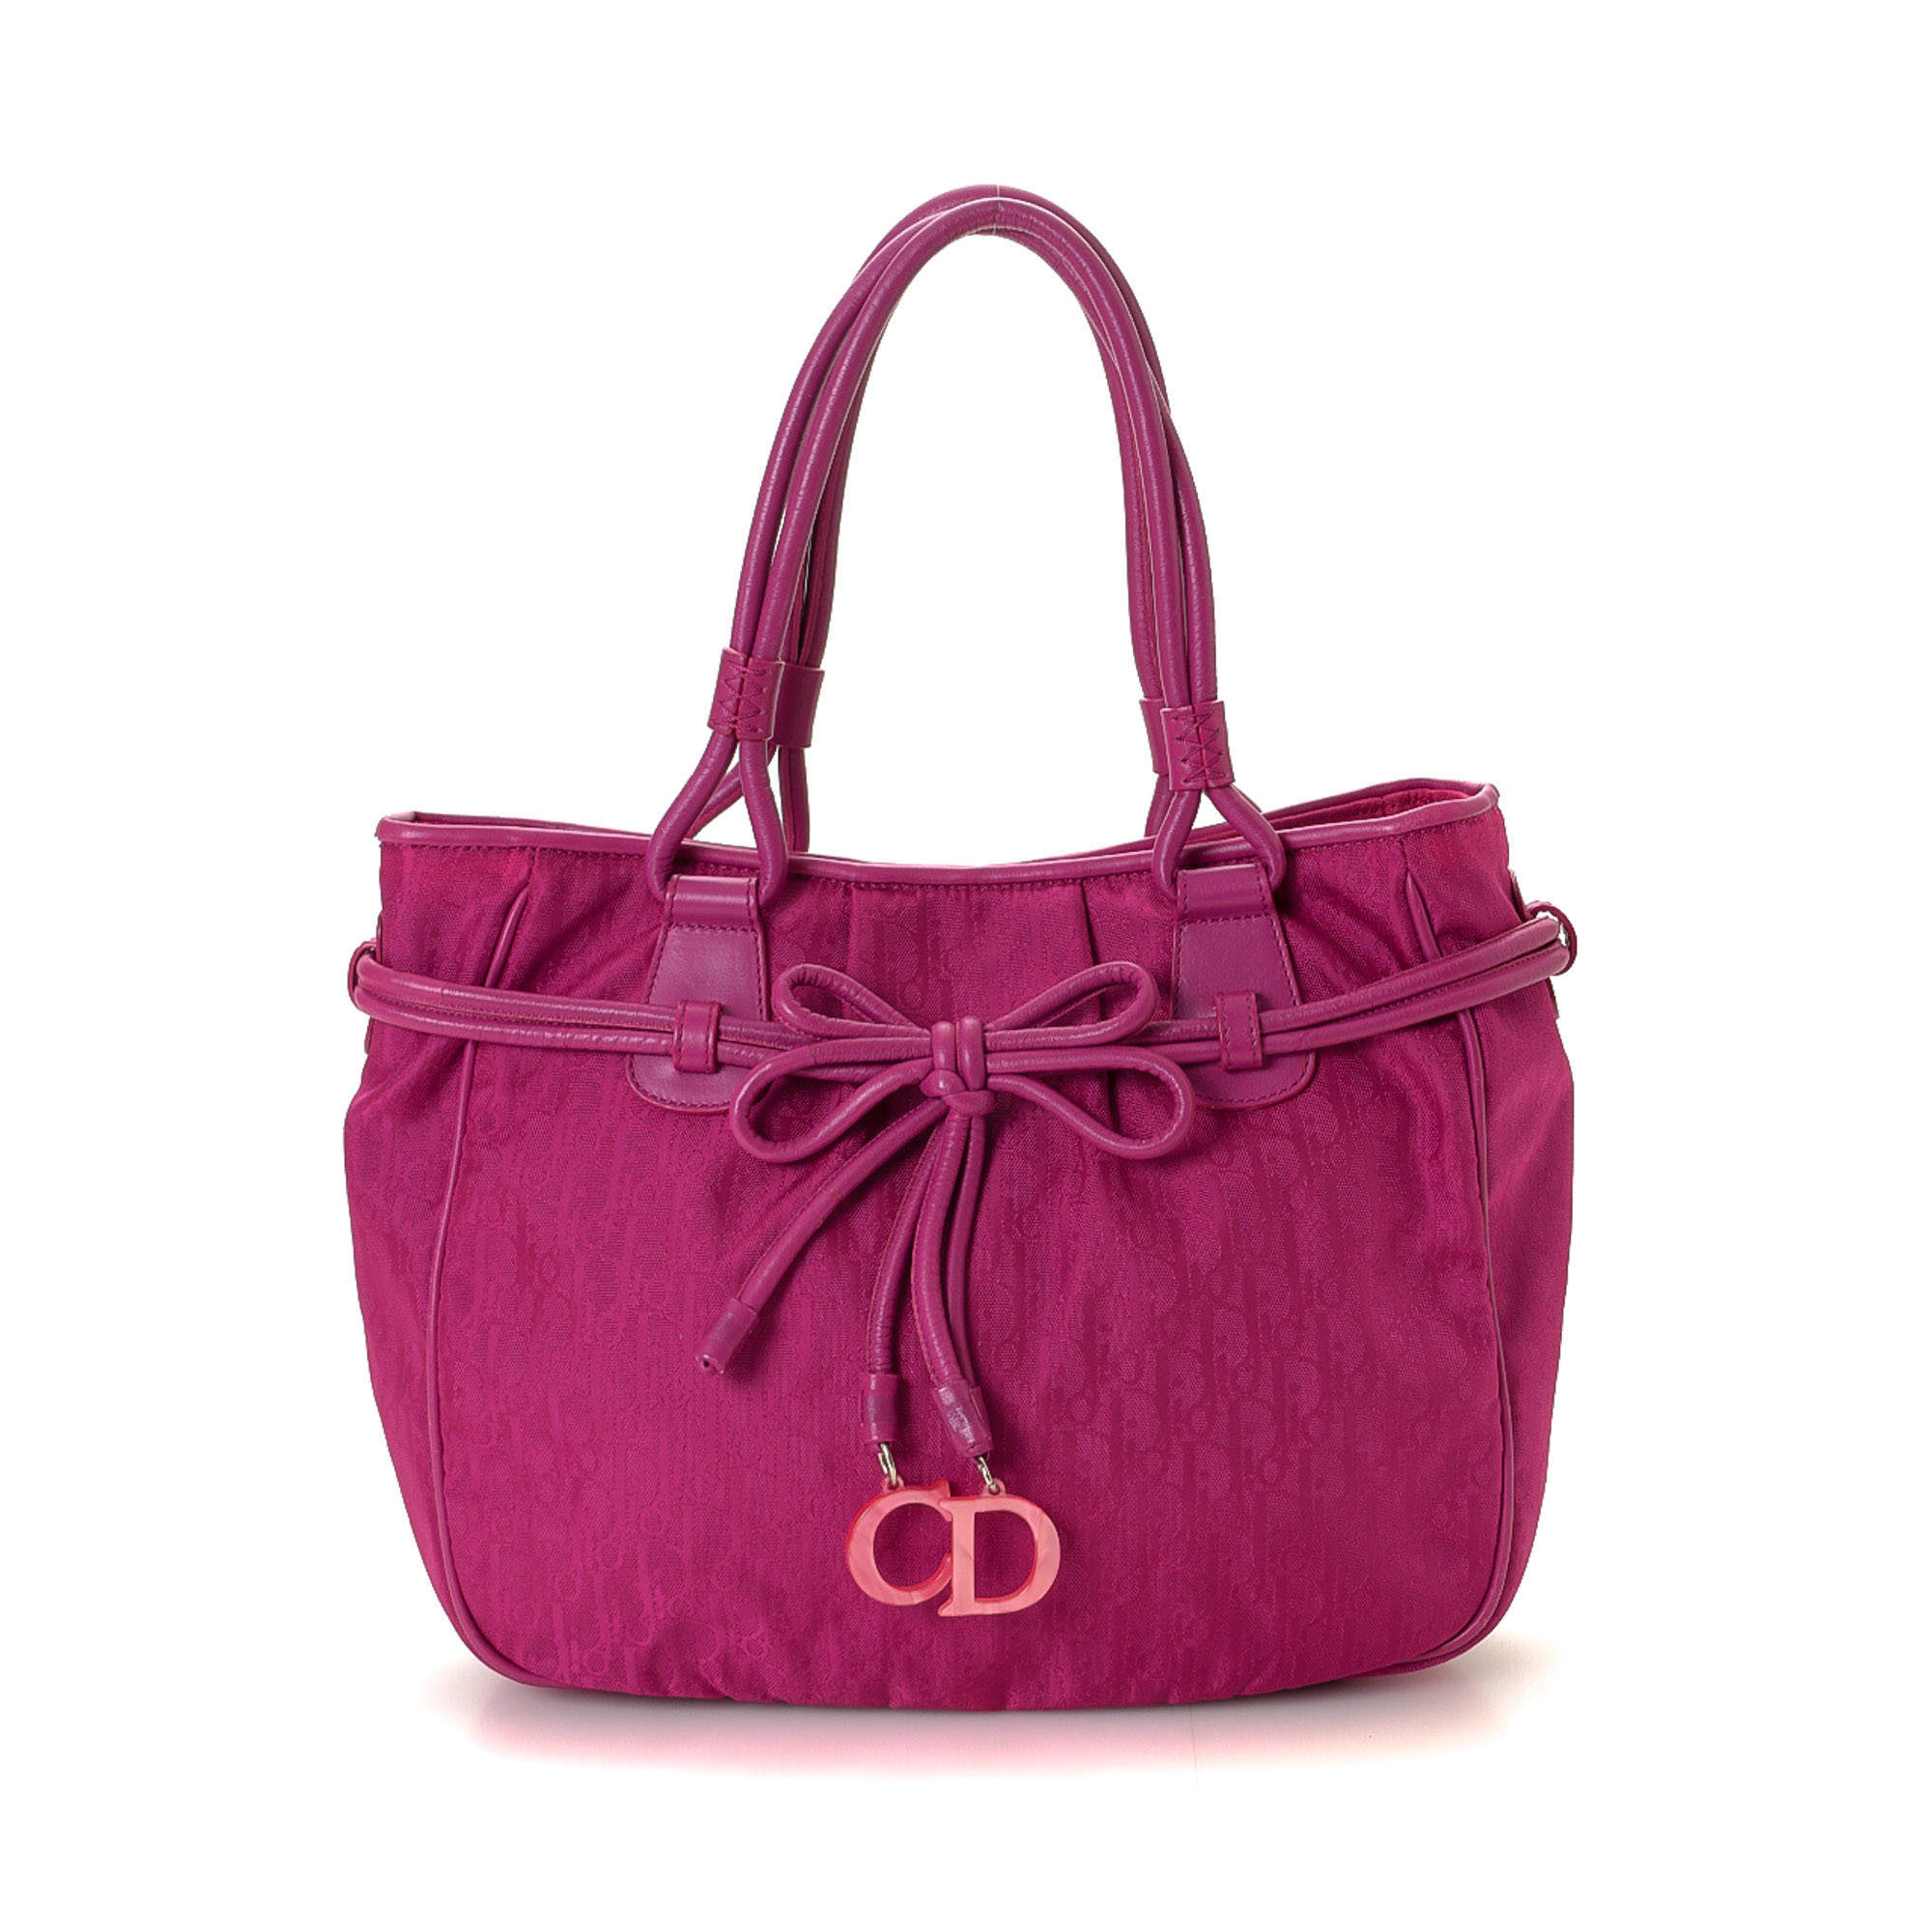 Dior Pink Trotter Canvas Bag